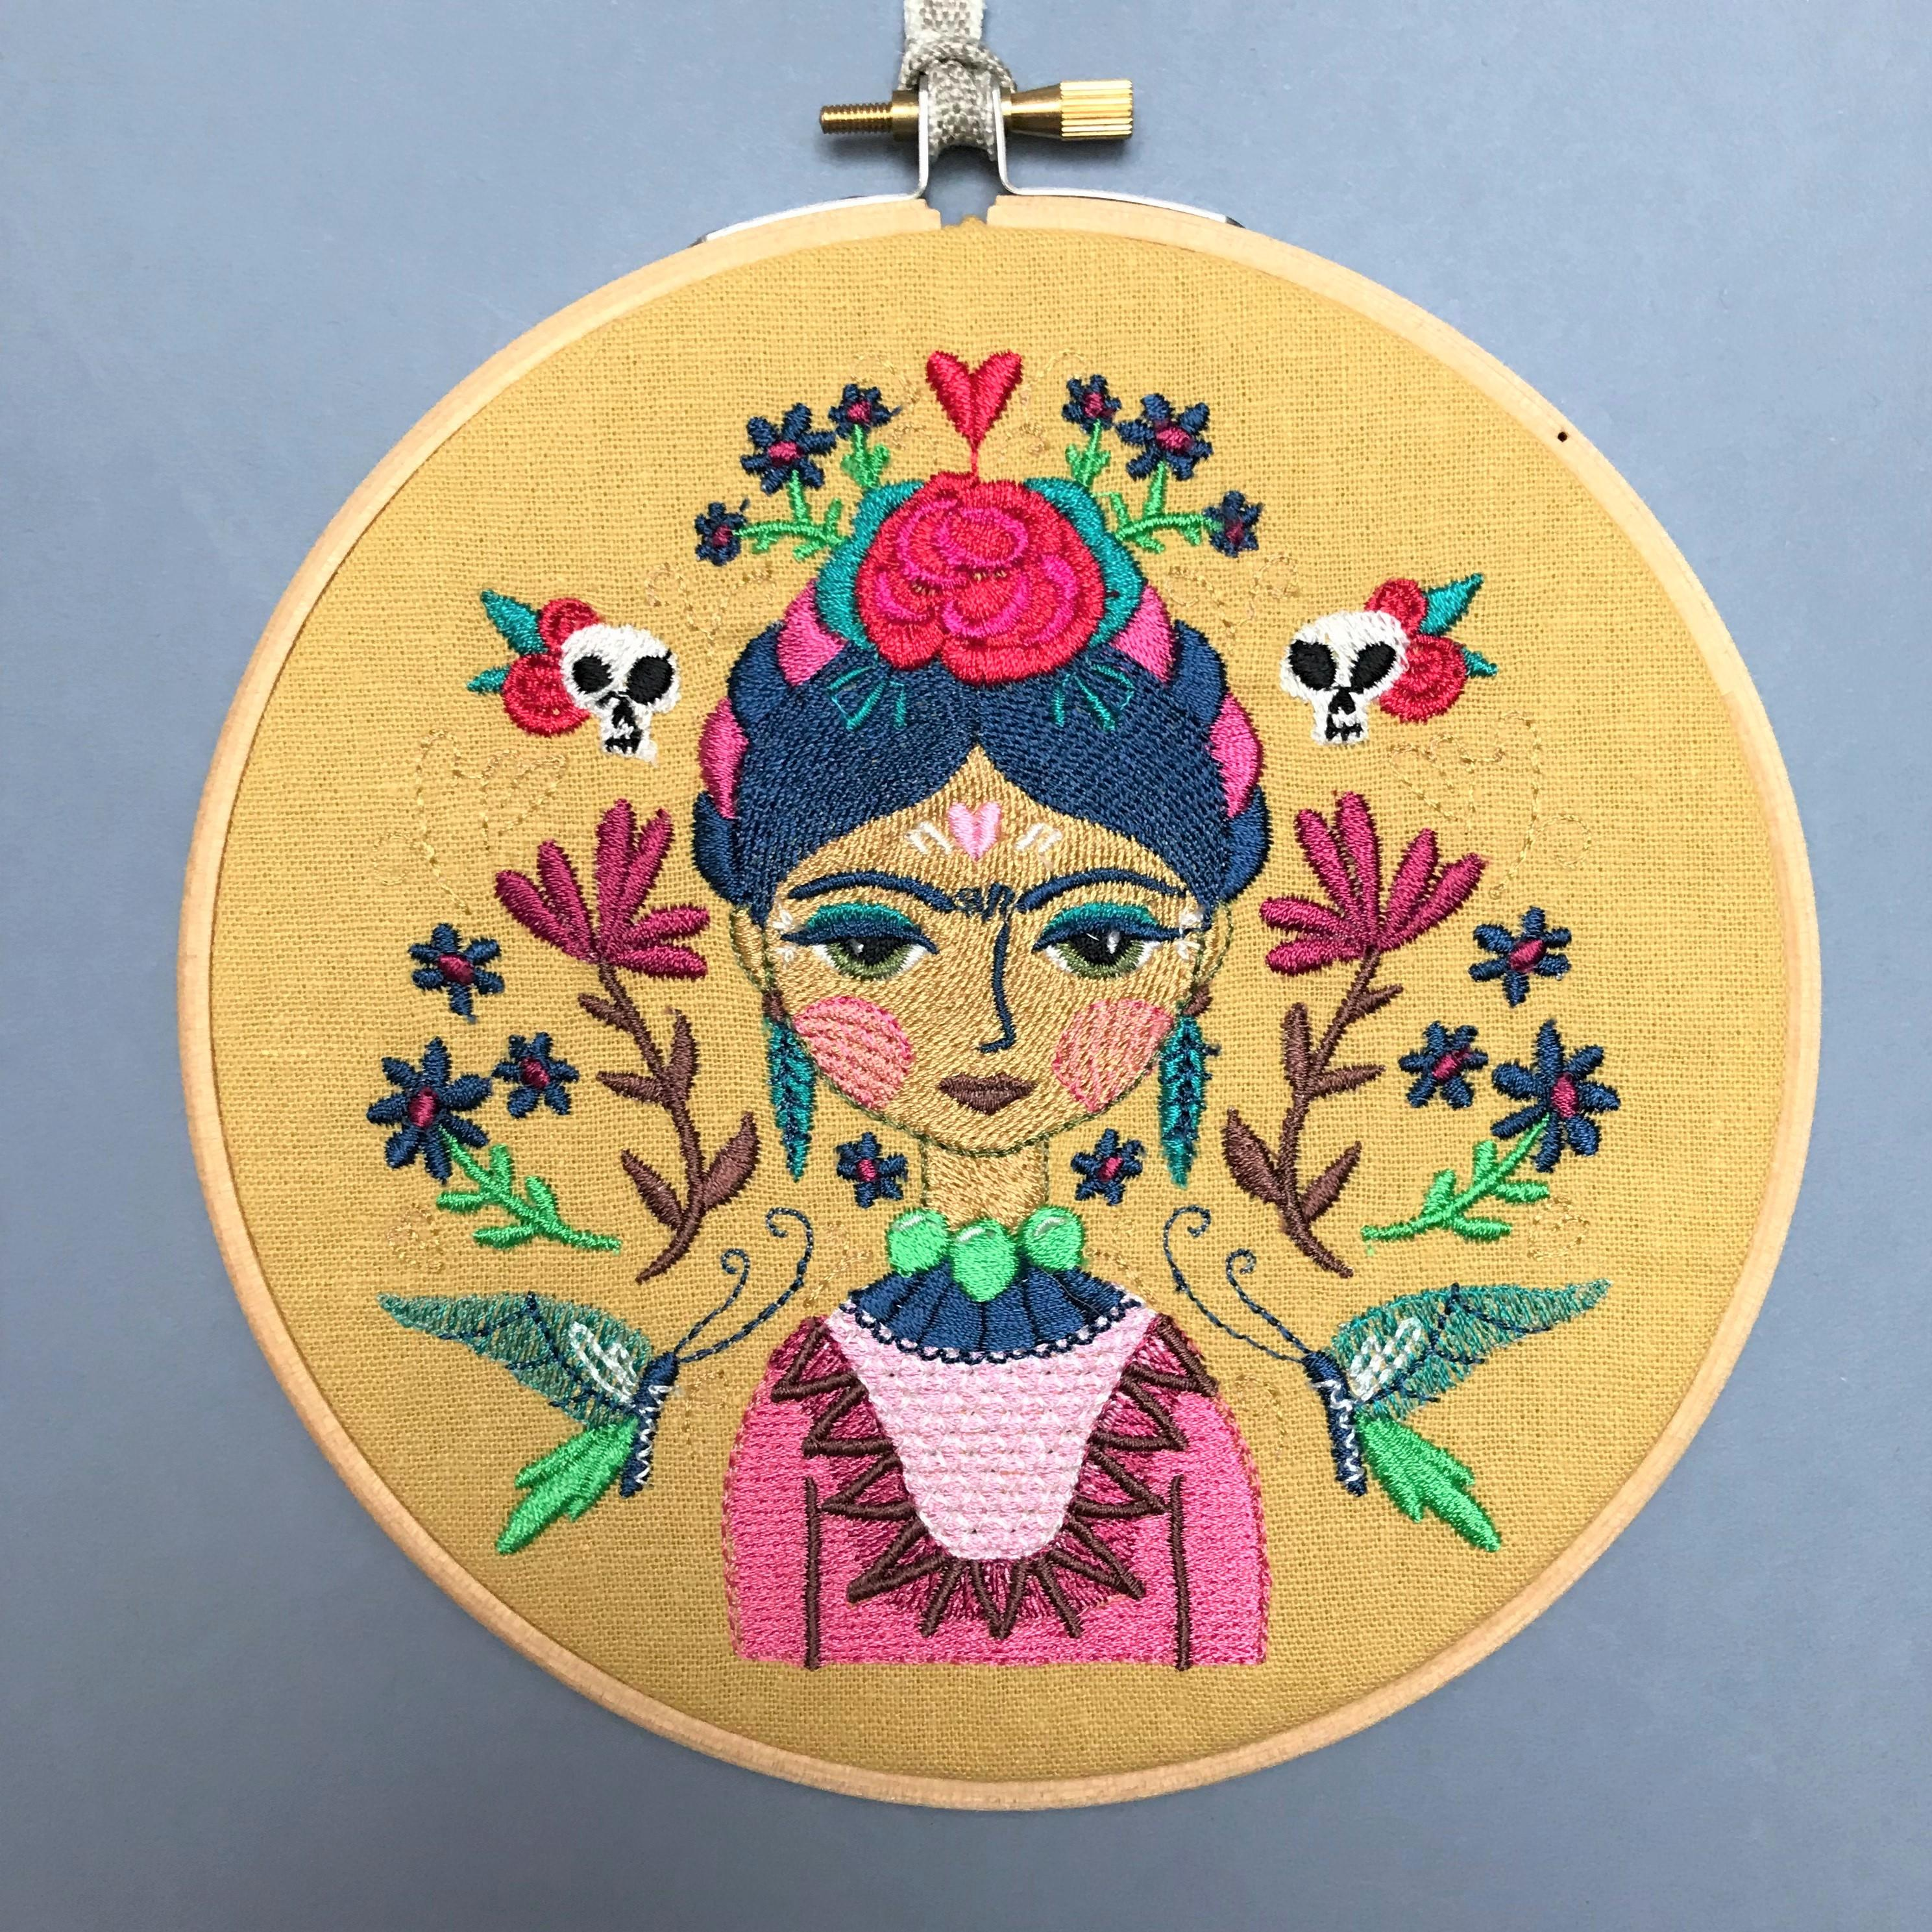 Frida Kahlo embroidered hoop mustard